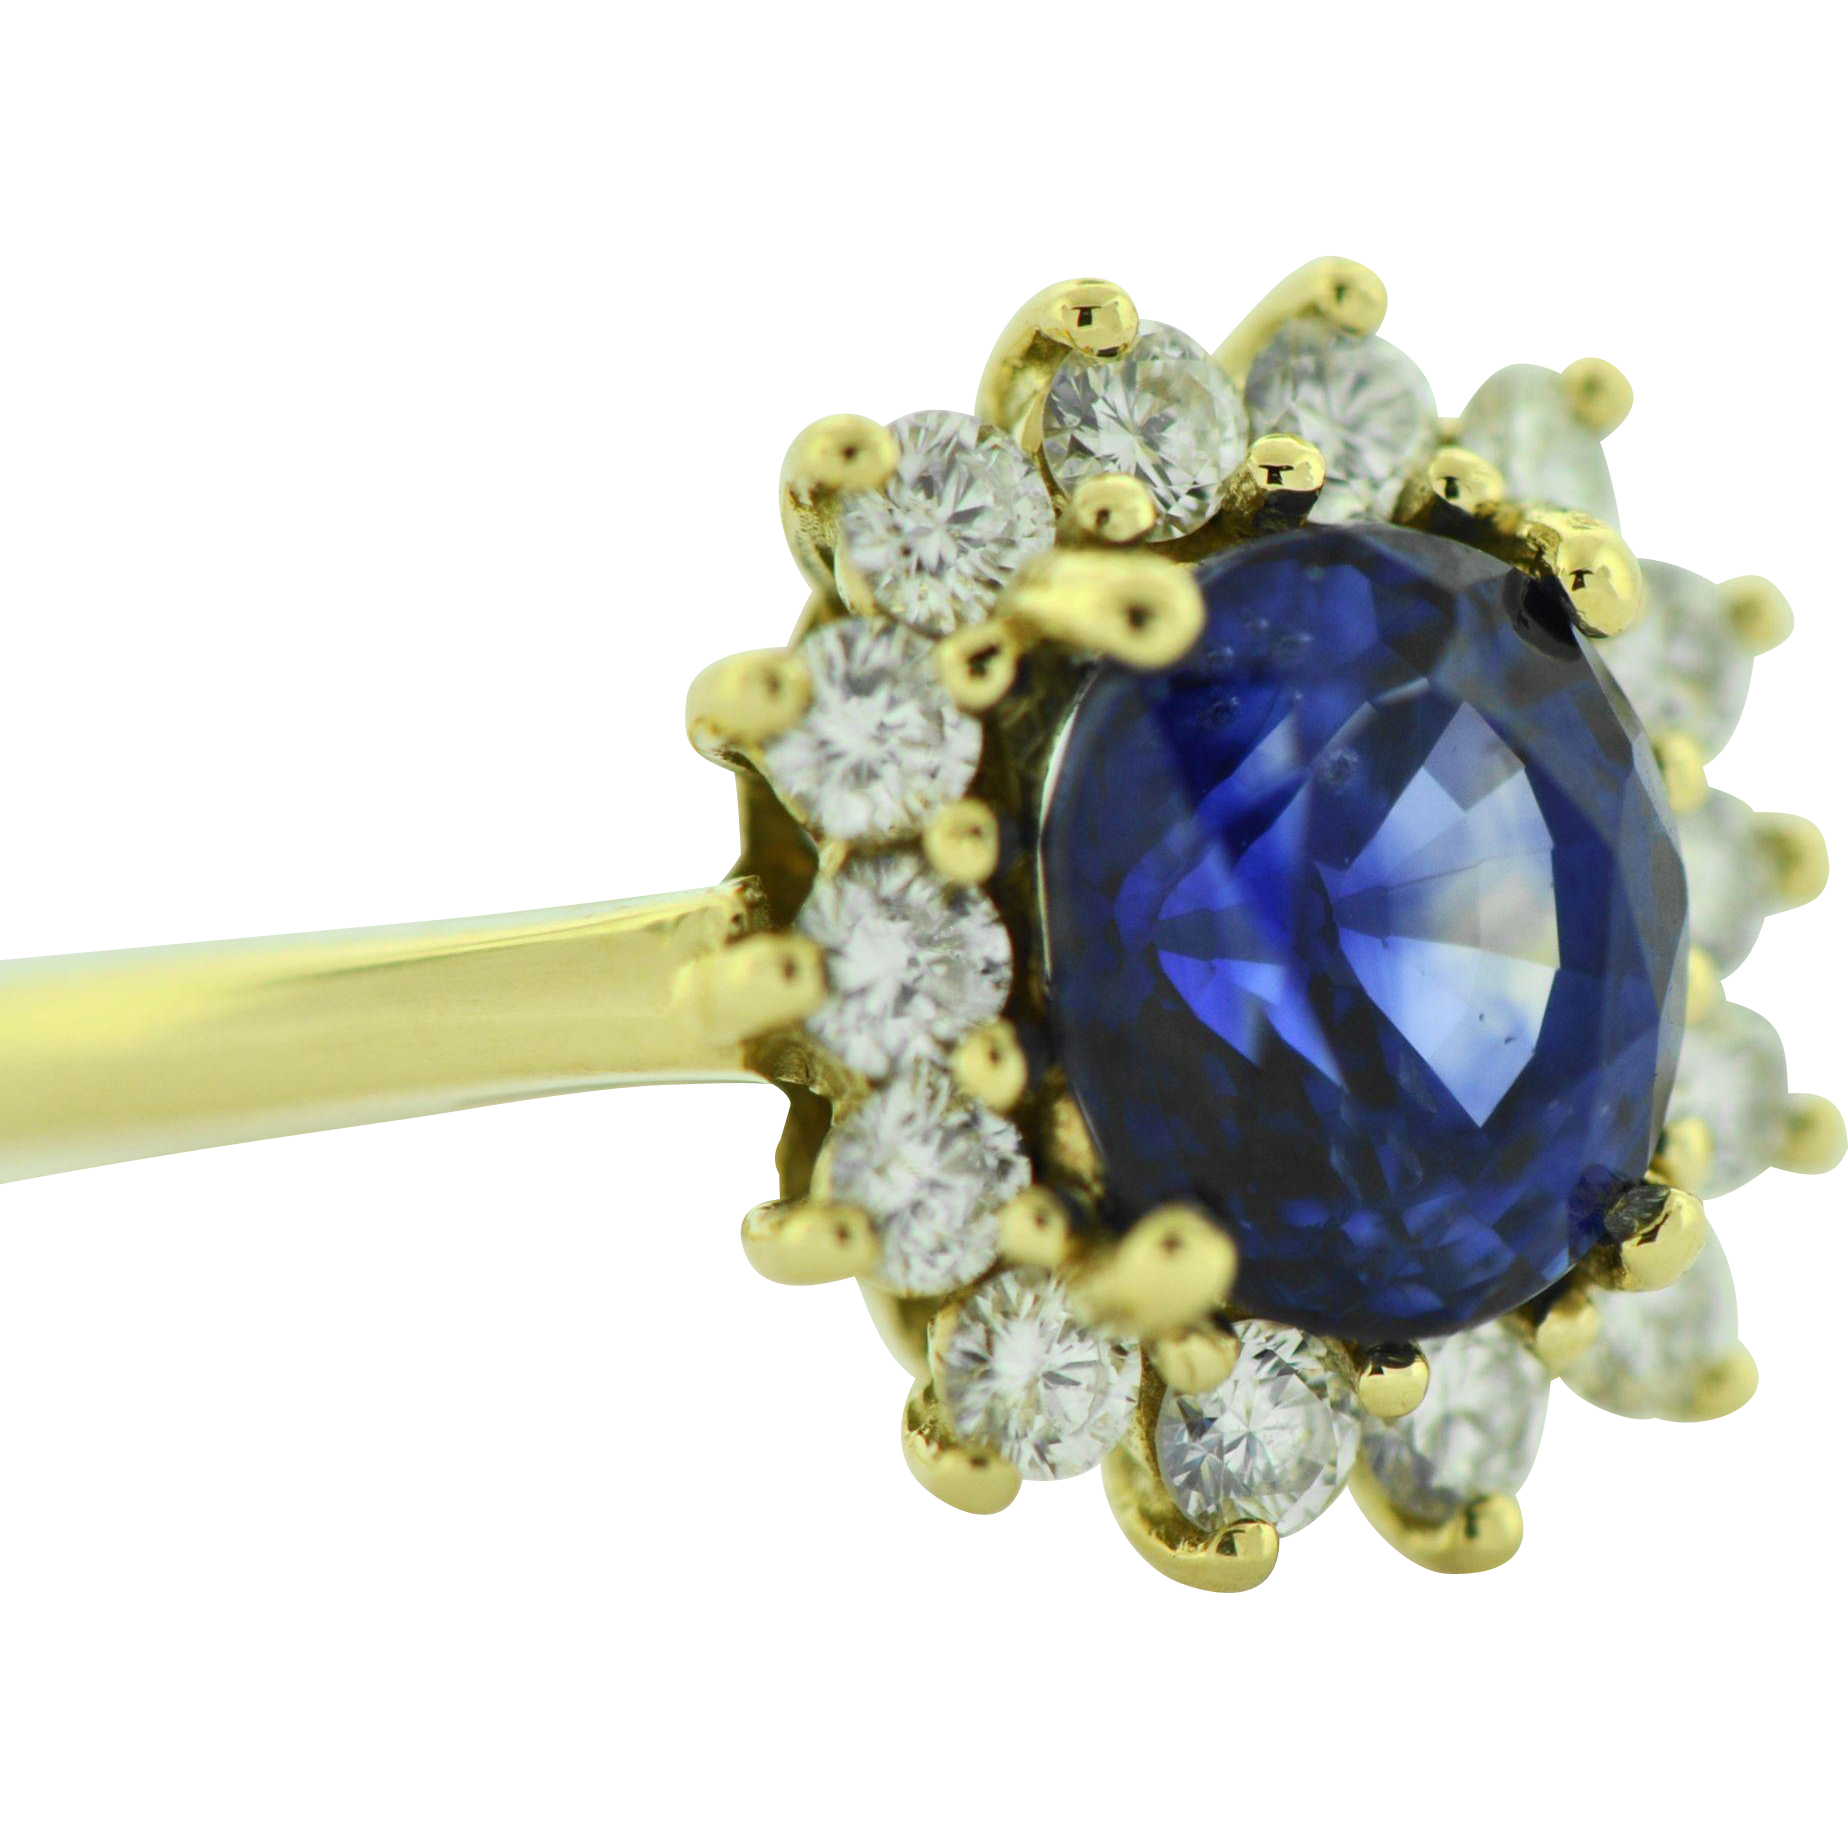 Vintage Tiffany & Co Sapphire Diamond 18k Gold Engagement Ring from capr